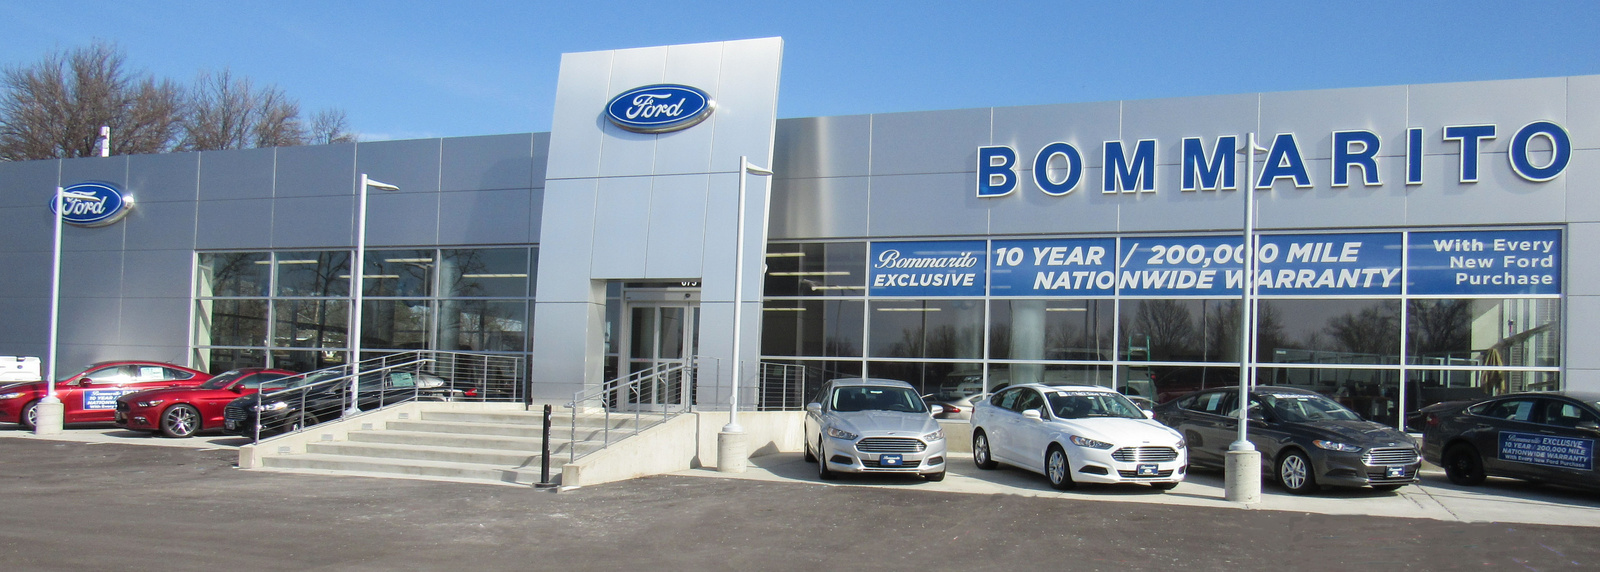 Bommarito Ford Hazelwood Mo Read Consumer Reviews